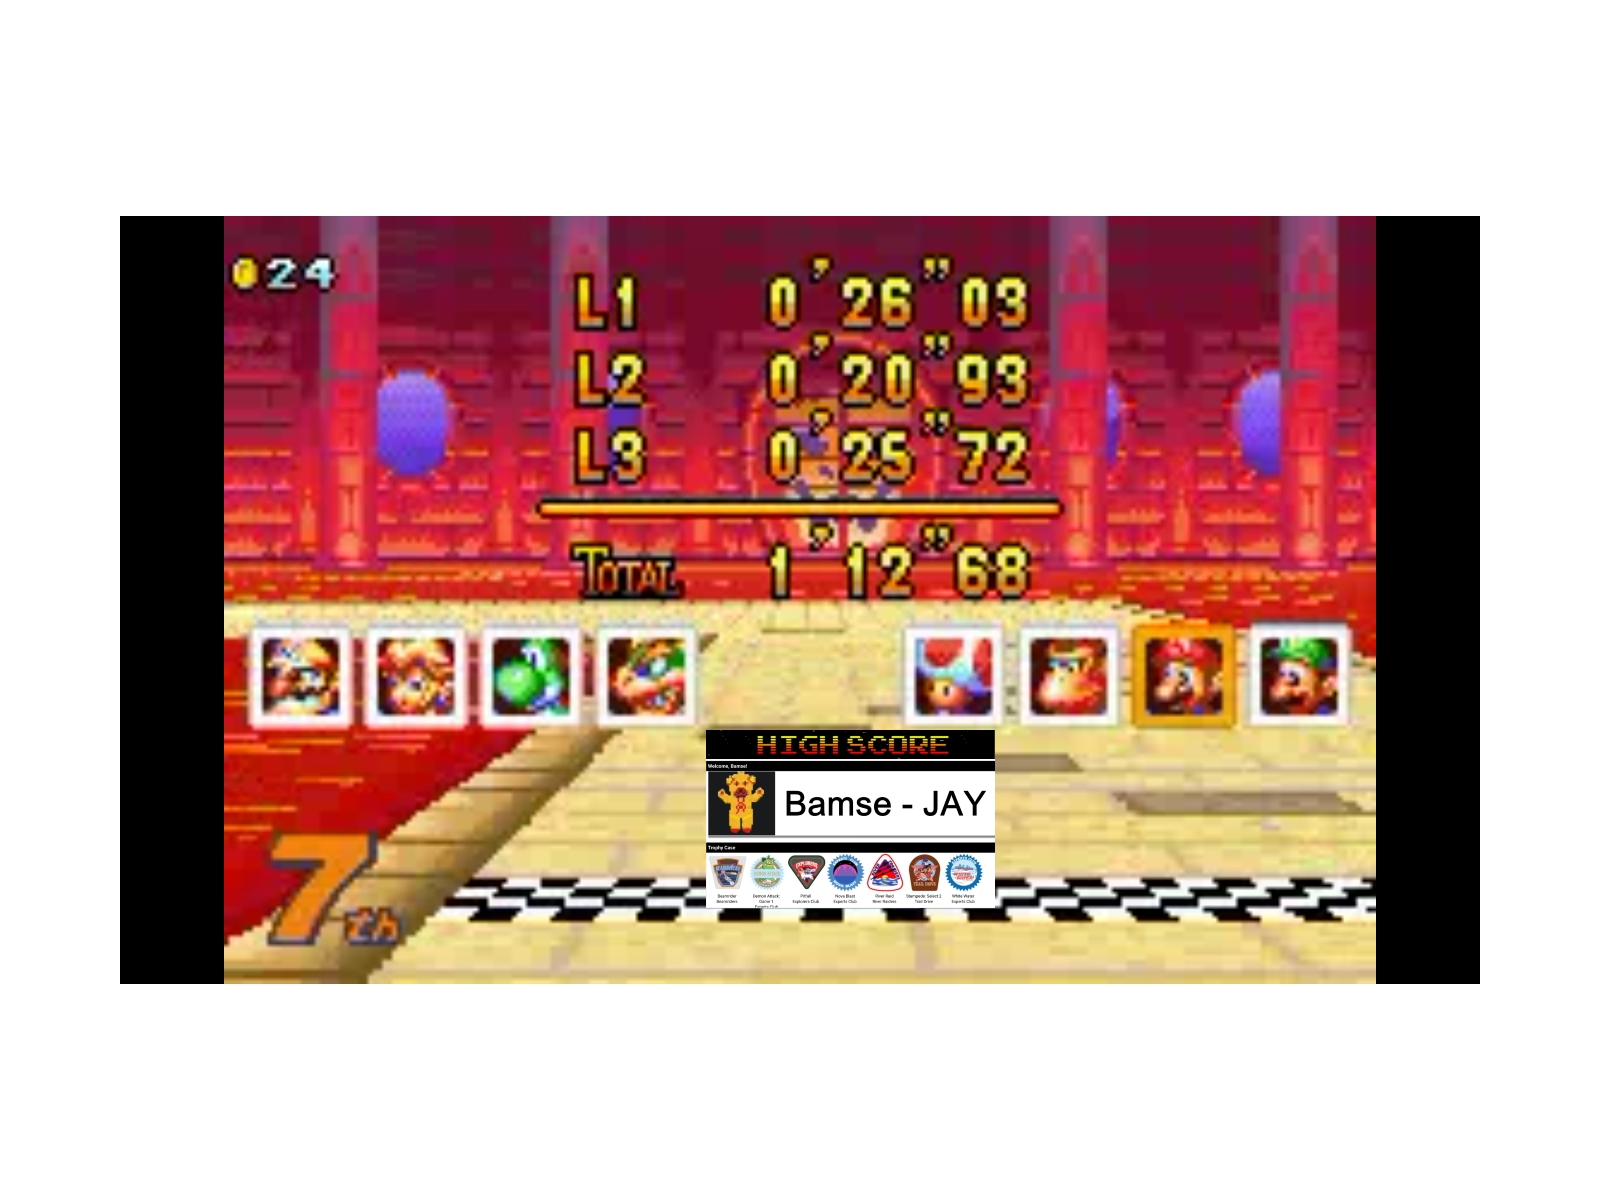 Bamse: Mario Kart Super Circuit: Bowser Castle 1 [150cc] (GBA Emulated) 0:01:12.68 points on 2019-12-17 12:26:45